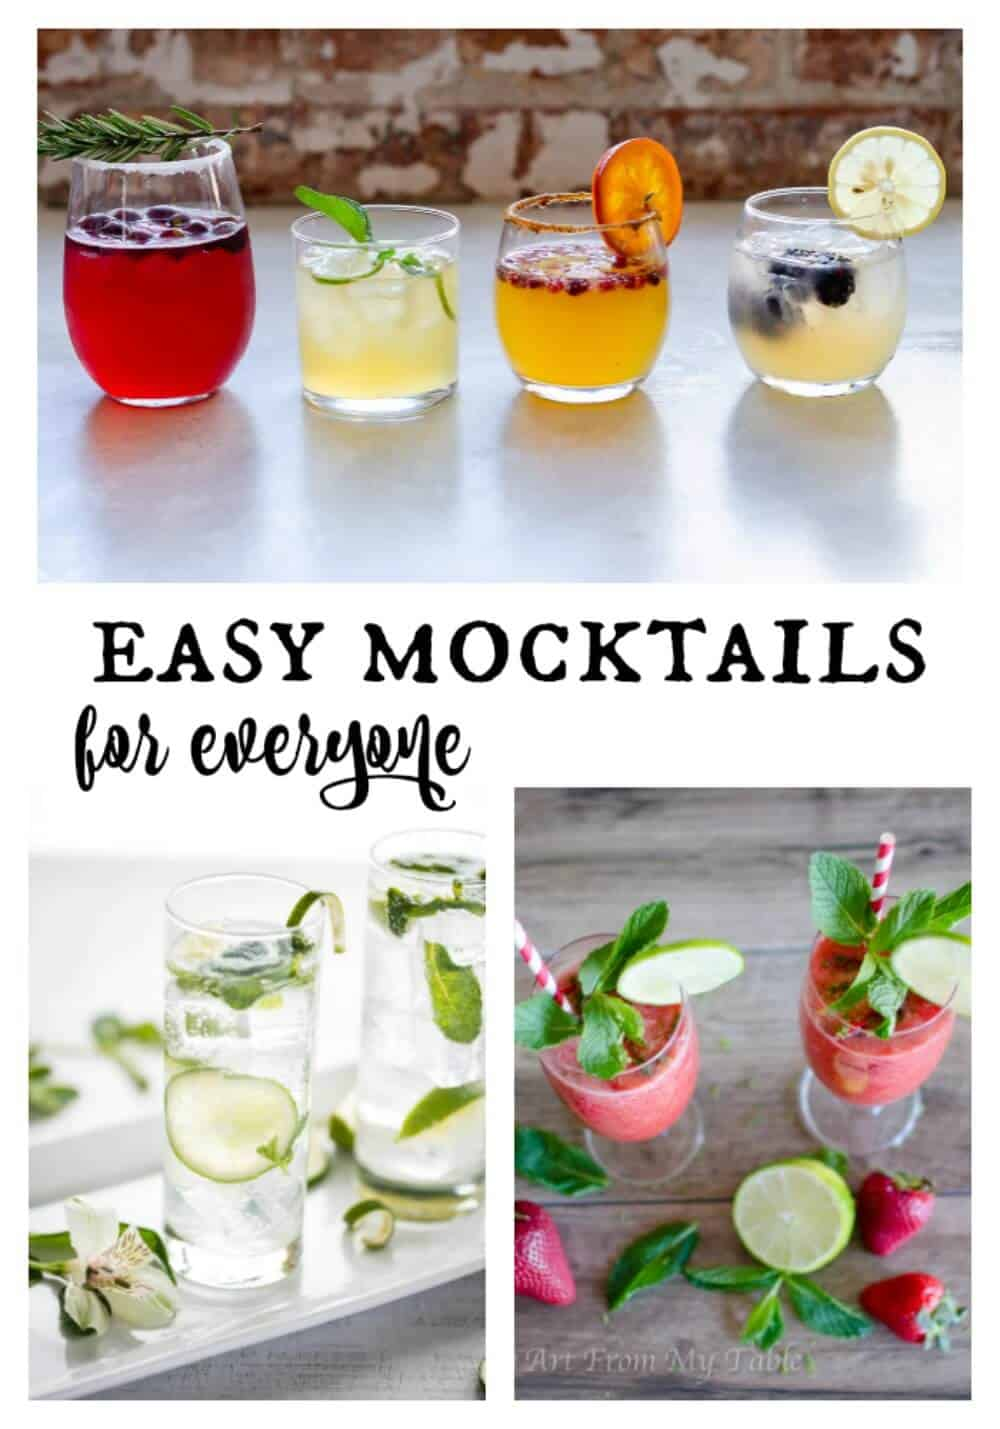 Whether you want a fun faux-cocktail for the family, or you don't drink, or you're the designated driver, here you'll find Popular and Easy Mocktail Recipes for Everyone!  It's what to drink when you're not drinking! #artfrommytable #mocktails #virgindrinks via @artfrommytable